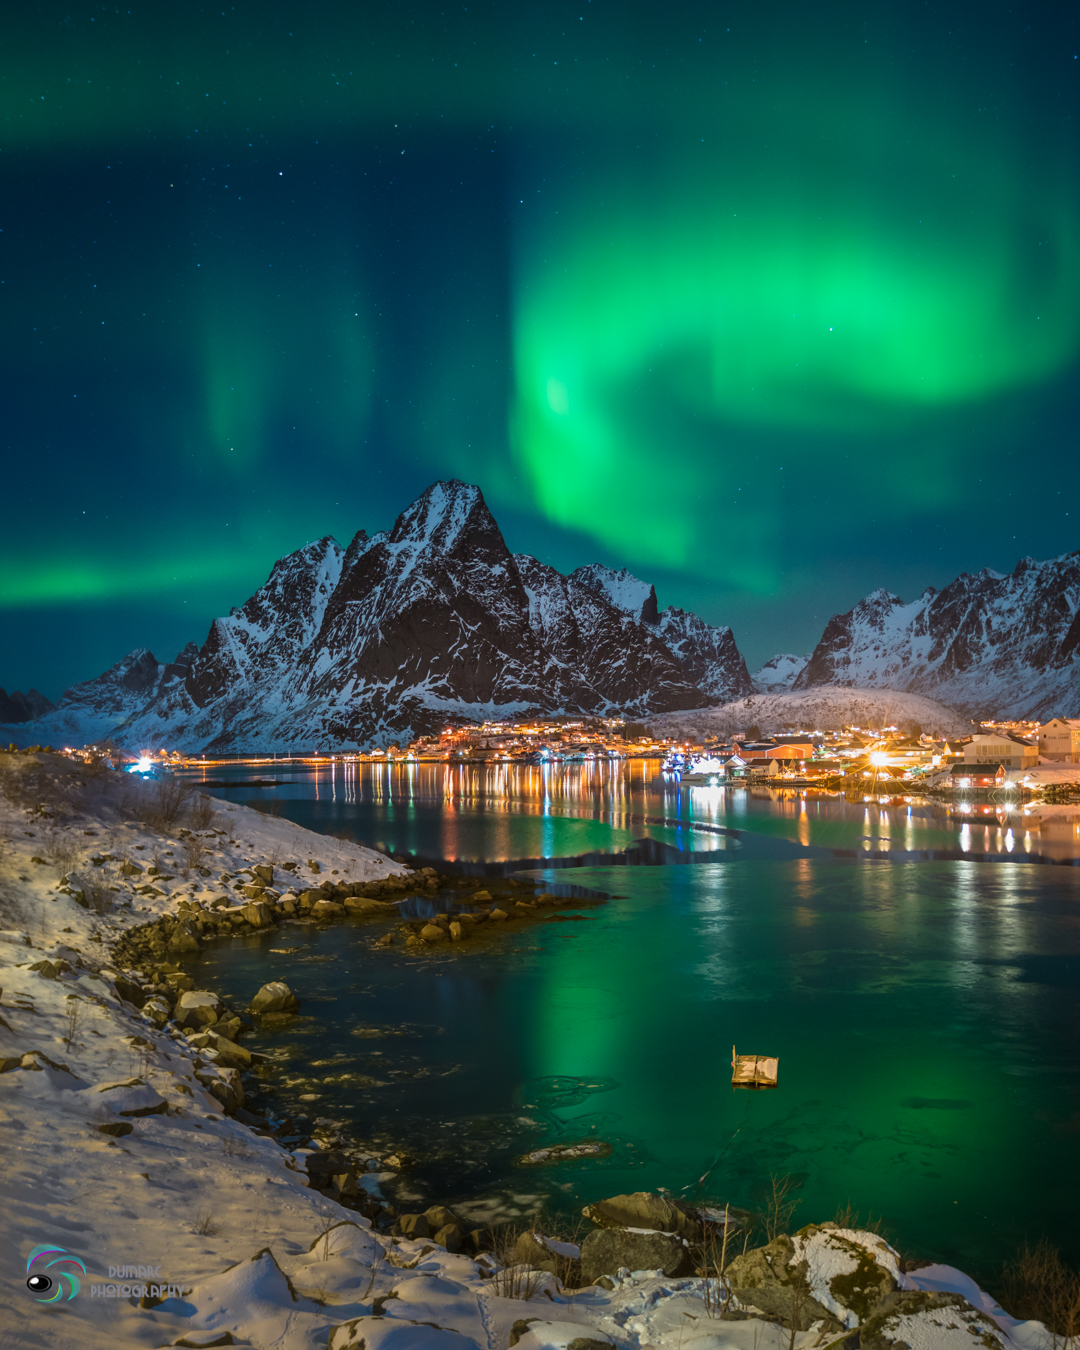 reine, Lofoten, Norway northern lights. lady aurora decided to entertain us with her fancy footsteps up in the sky. Ribbons